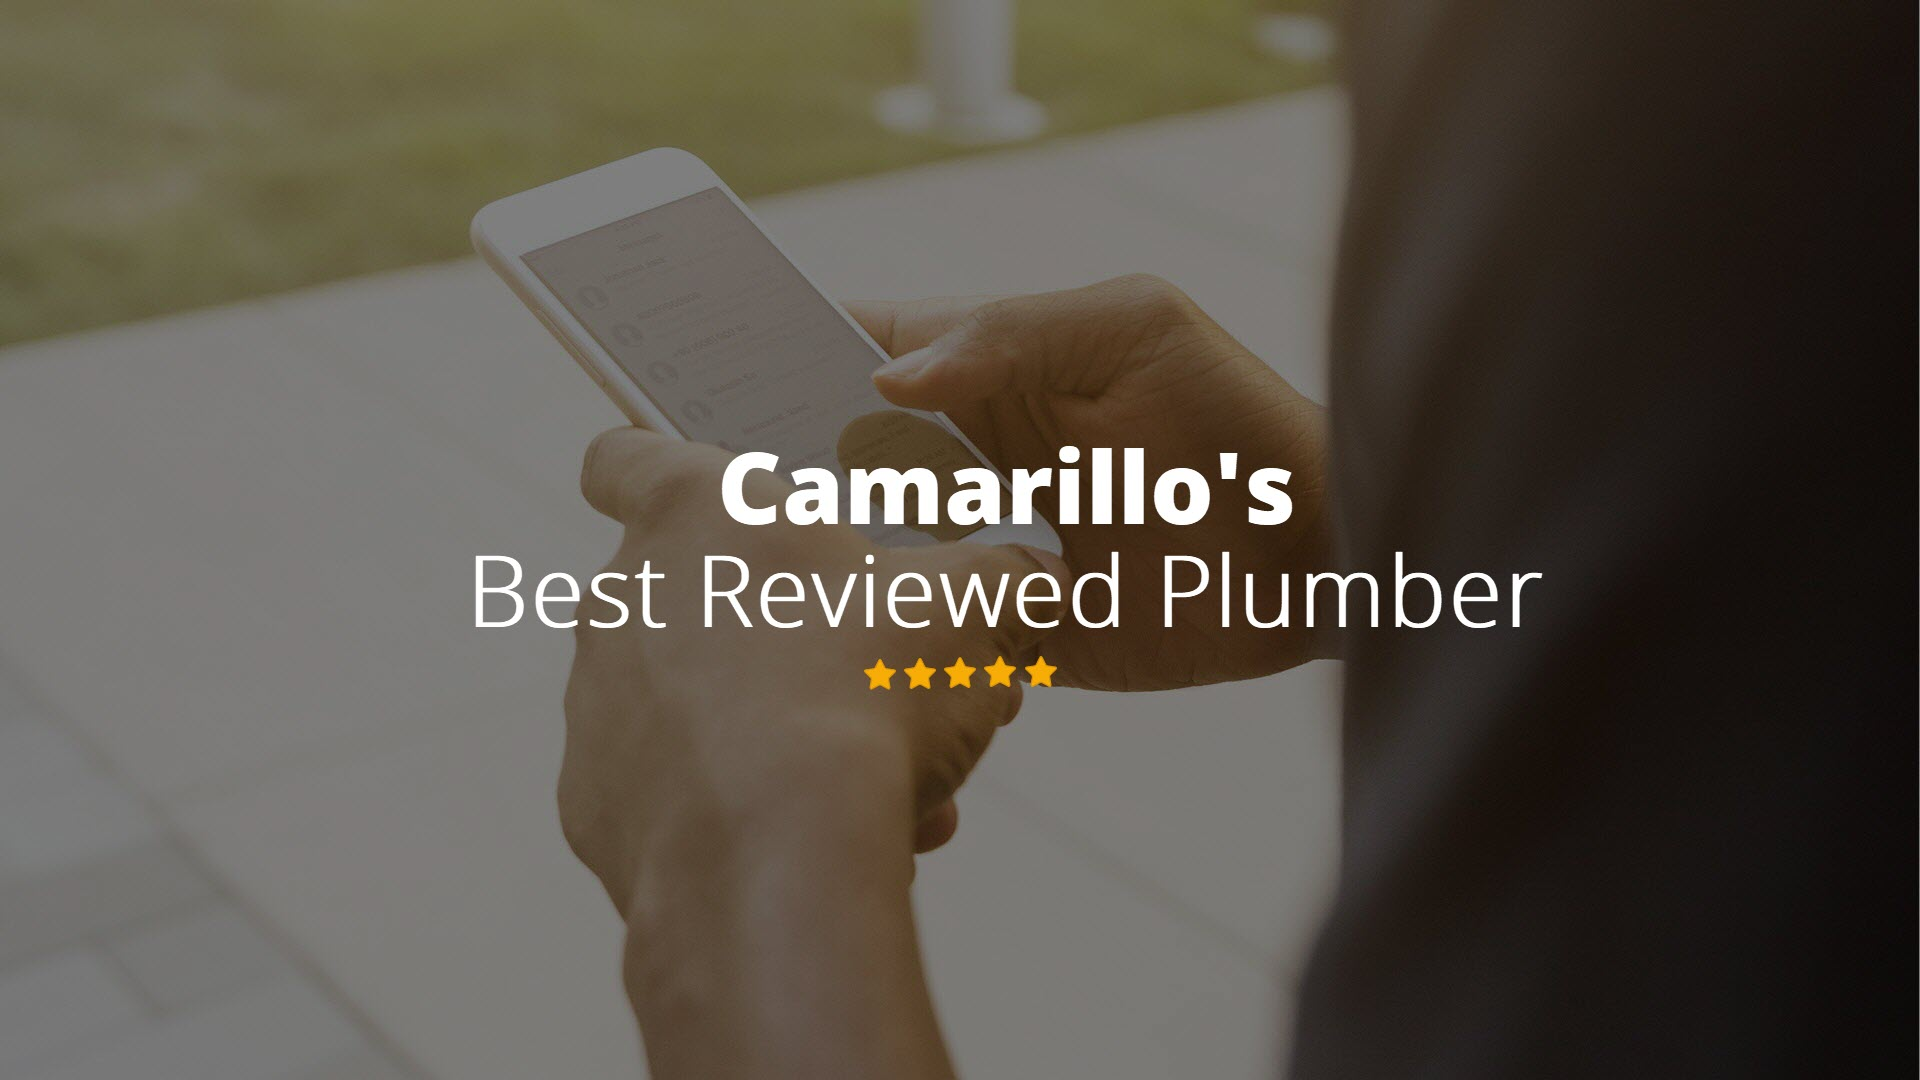 Camarillo's Best rated Plumber